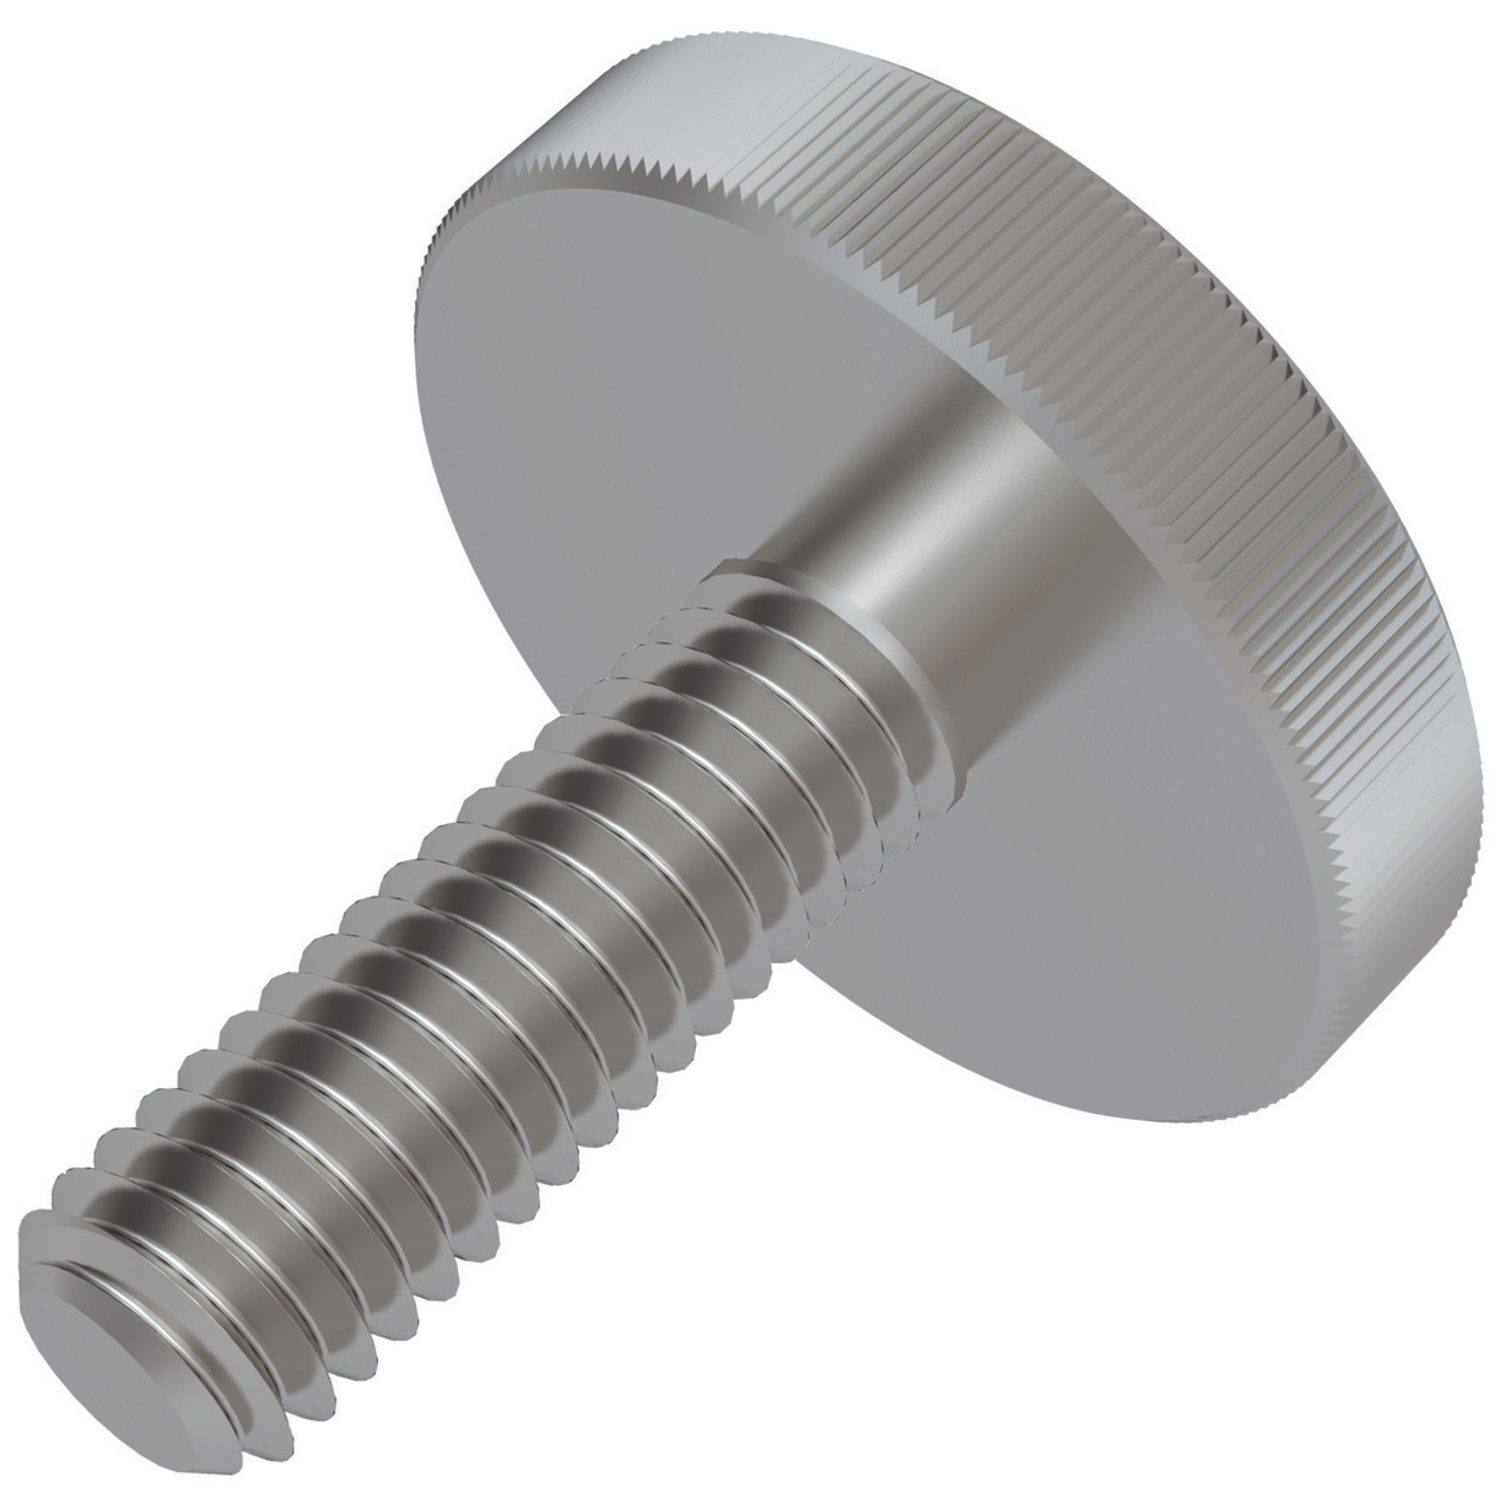 Flat Knurled Thumb Screws- Steel